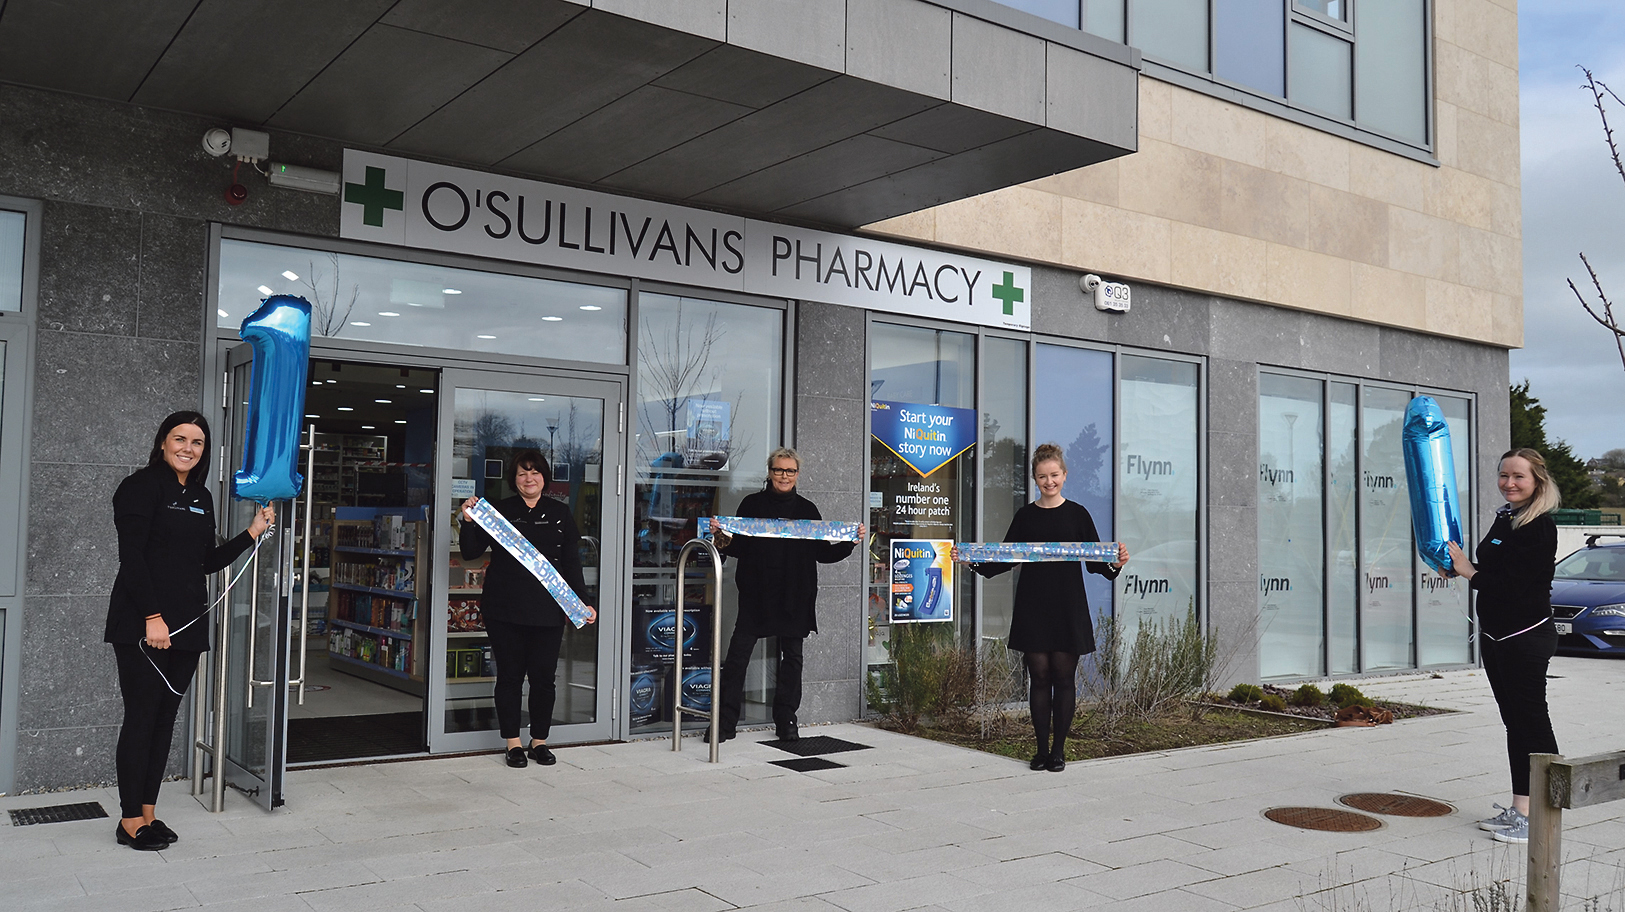 O'Sullivan's Pharmacy celebrates its first birthday operating out of Clonakilty